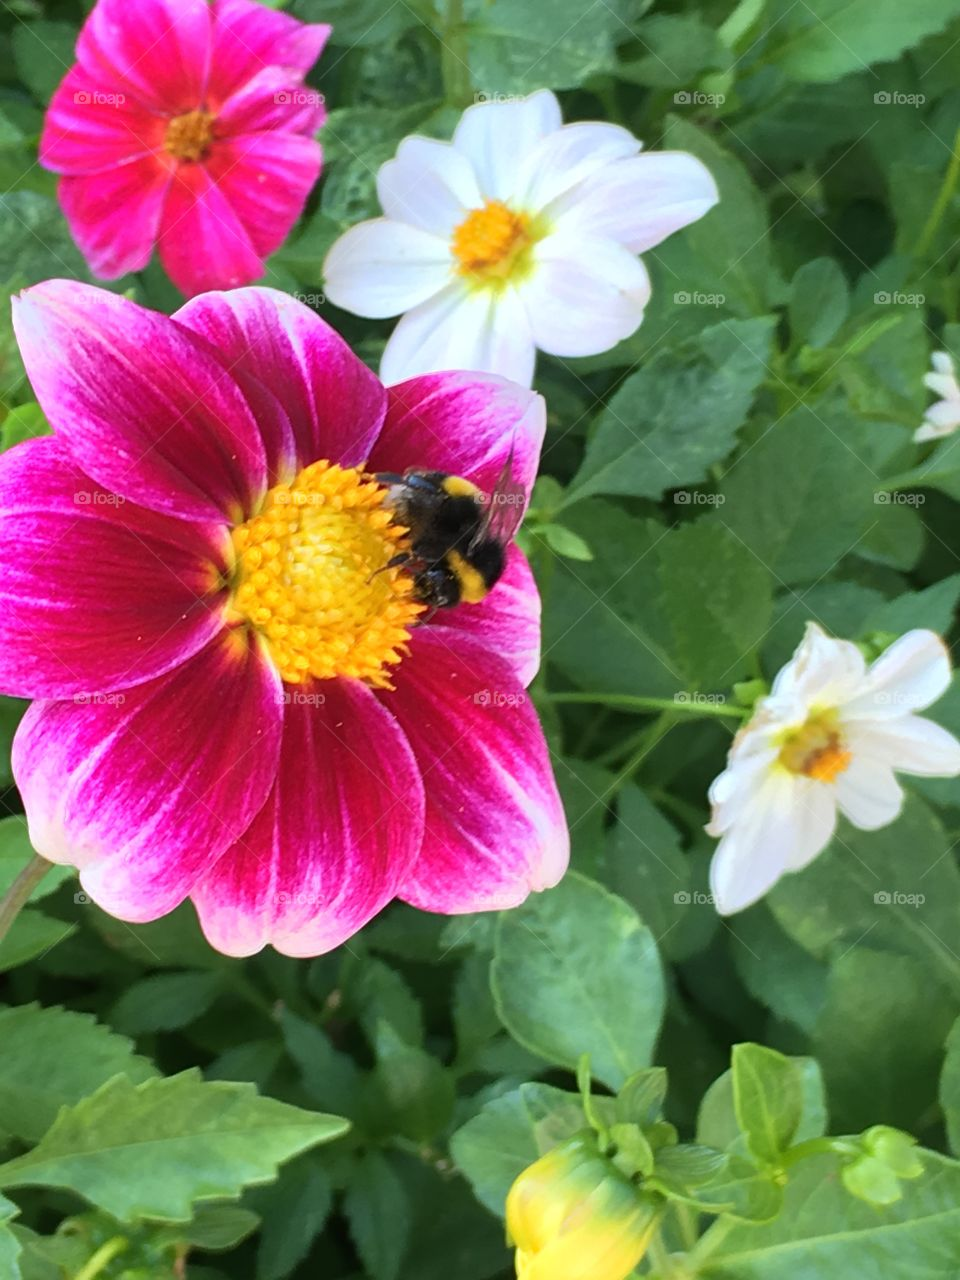 Bee on dahlia flowers in Kalofer monastery garden  in Bulgaria